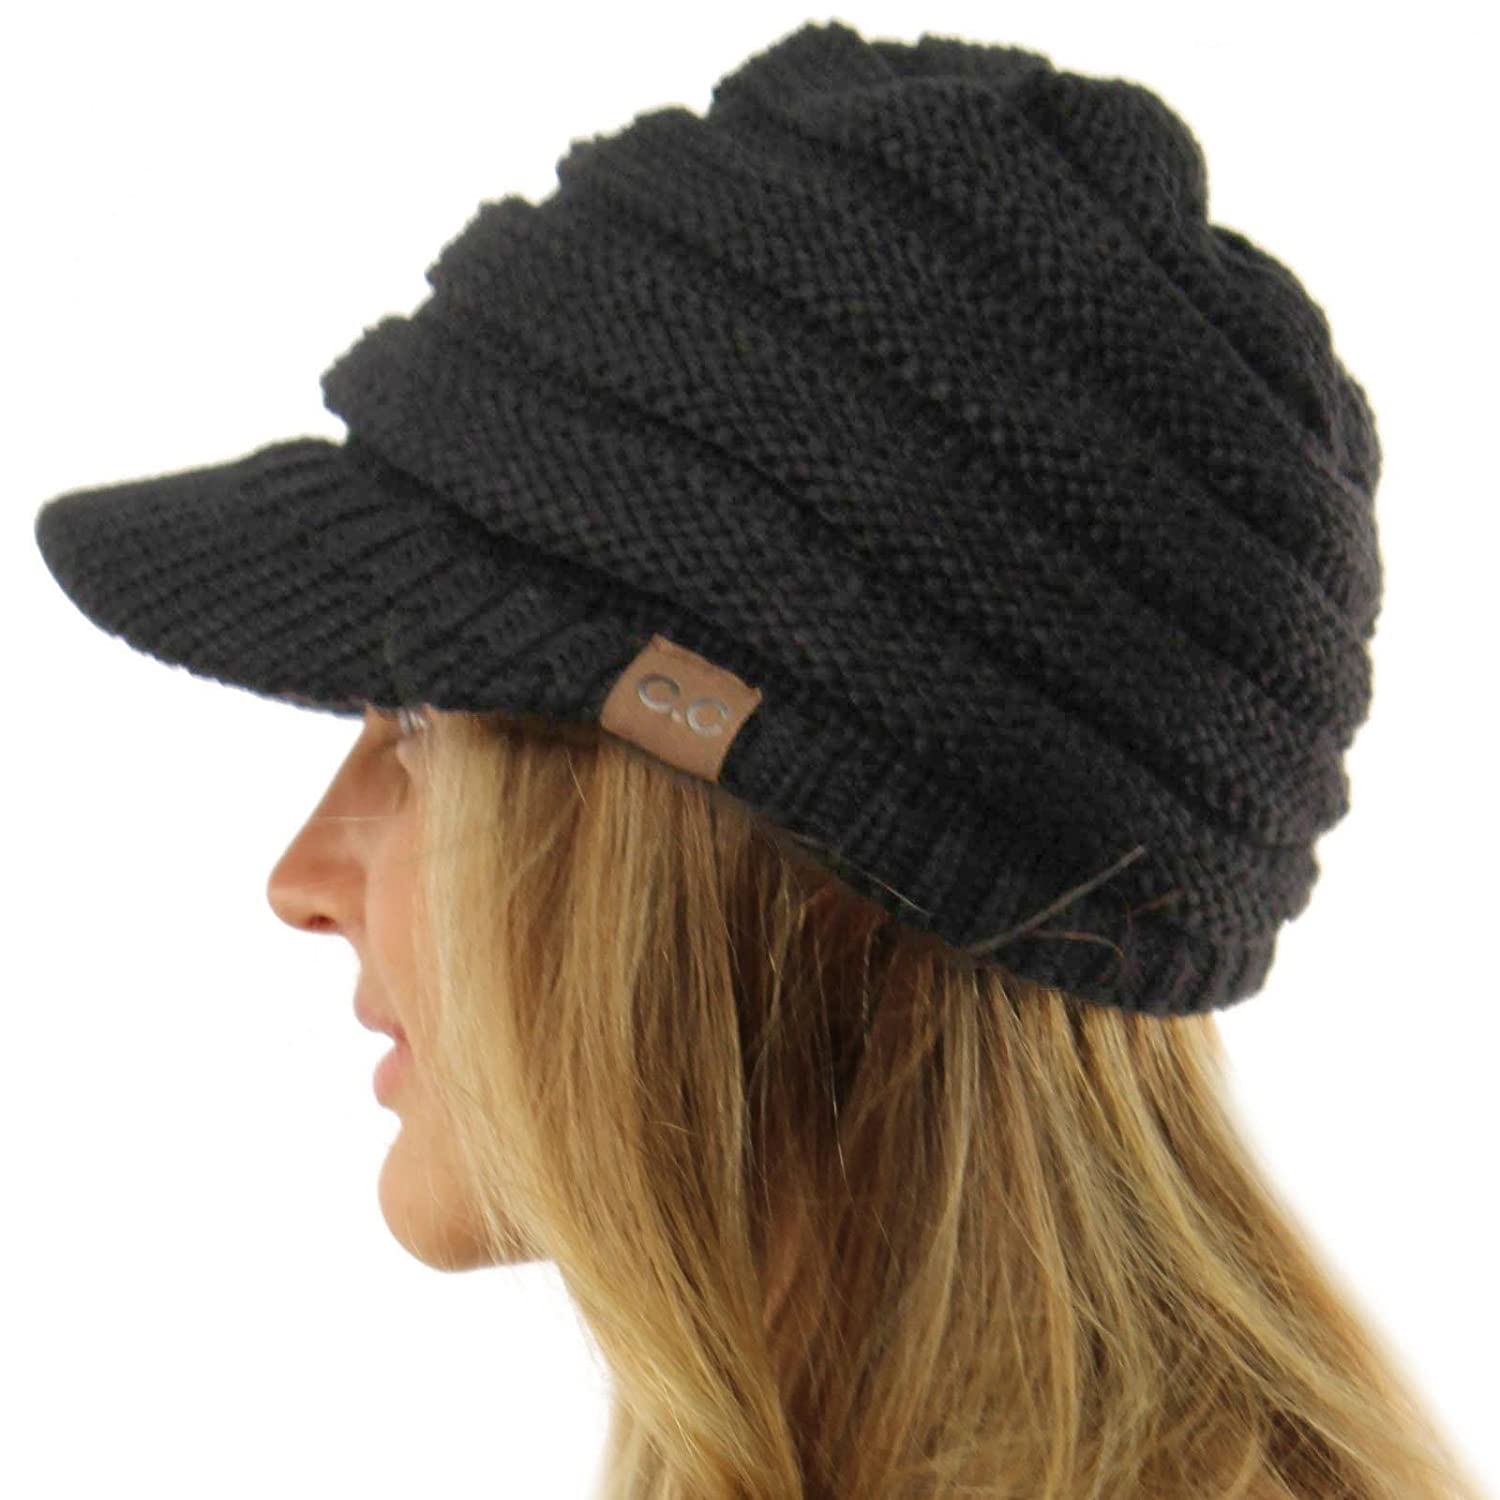 Unisex Winter Thick Chunky Stretch Knit Beanie Skully Visor Jeep Hat  Charcoal M at Amazon Men s Clothing store  add3b9b2f9a